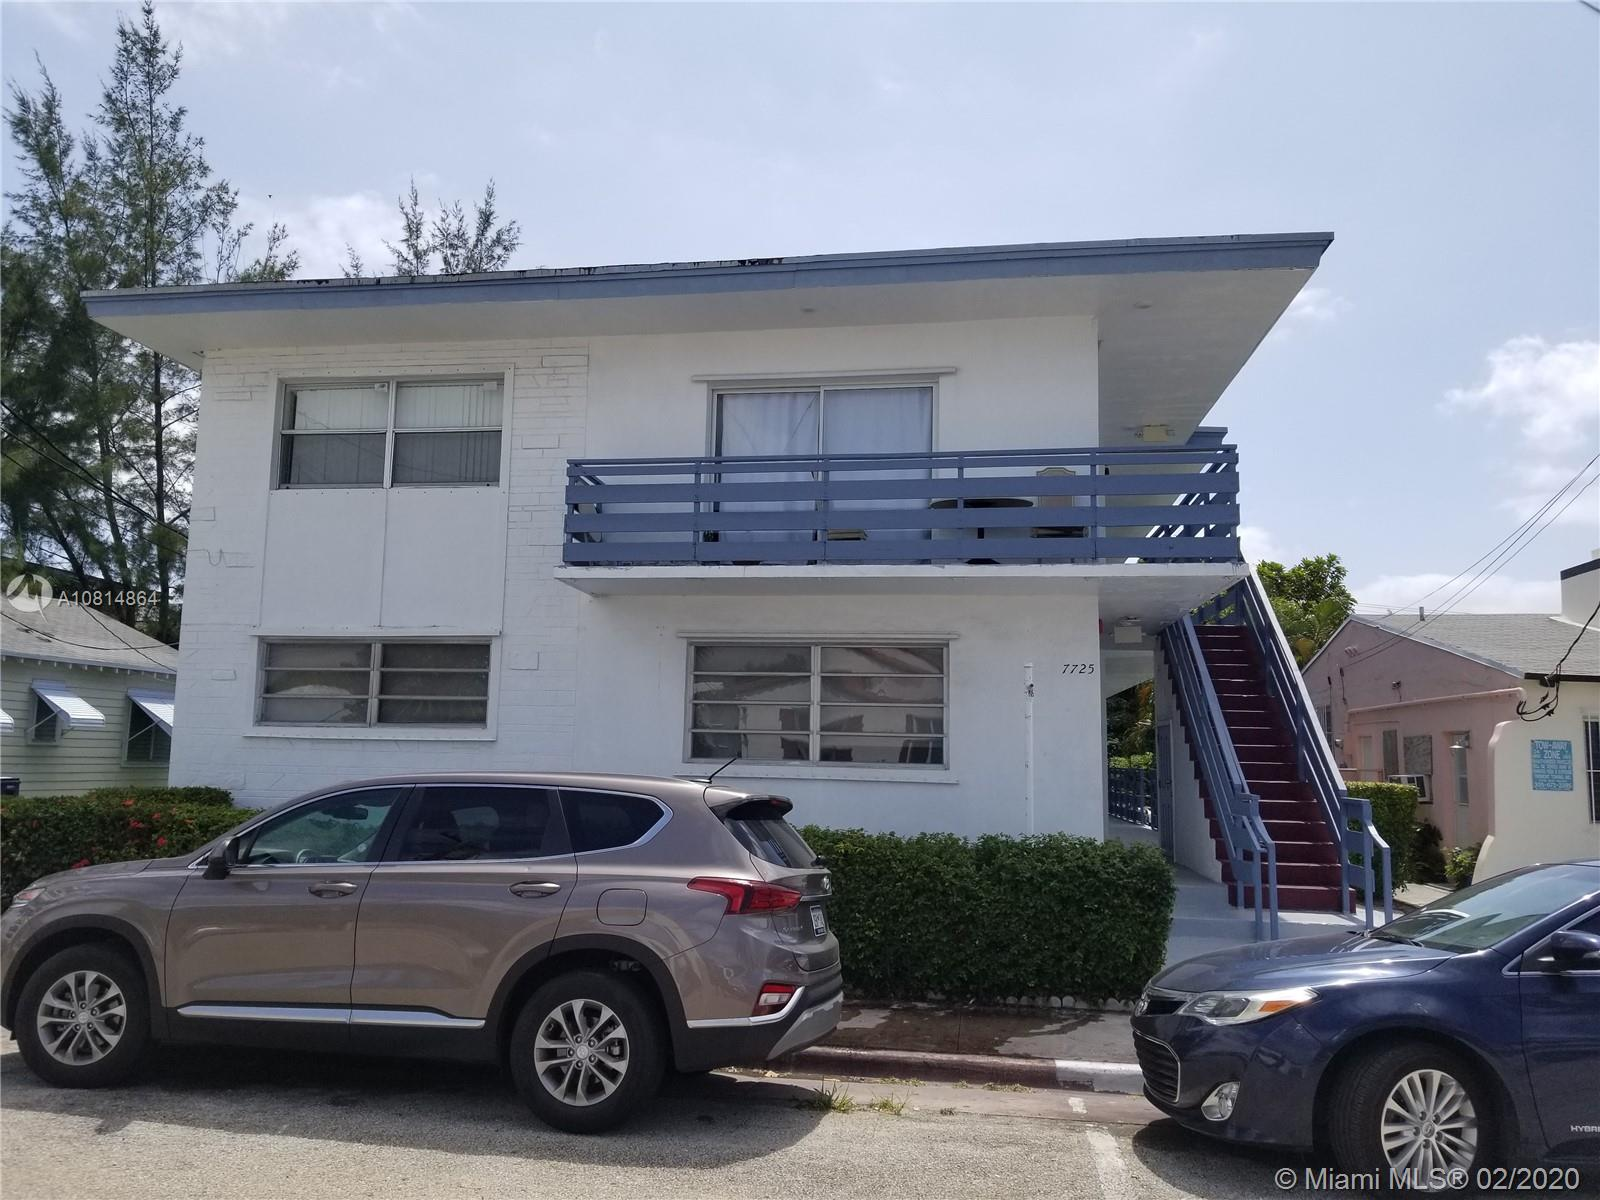 REMODELED STUDIO, 4 BLOCKS FROM THE BEACH, FIRST FLOOR ON A QUIET TWO STORIES BUILDING. VERY LOW MAINTENANCE, $120.00 PER MONTH (PAID QUARTERLY).STREET PARKING.WASHER/DRYER IN BACK OF THE BUILDING . ASSOCIATION DOES NOT ALLOW TEMPORARY RENTALS. IMPORTANT: BUILDING JUST PASSED 40 YEARS RE CERTIFICATION . NO SPECIAL ASSESSMENTS